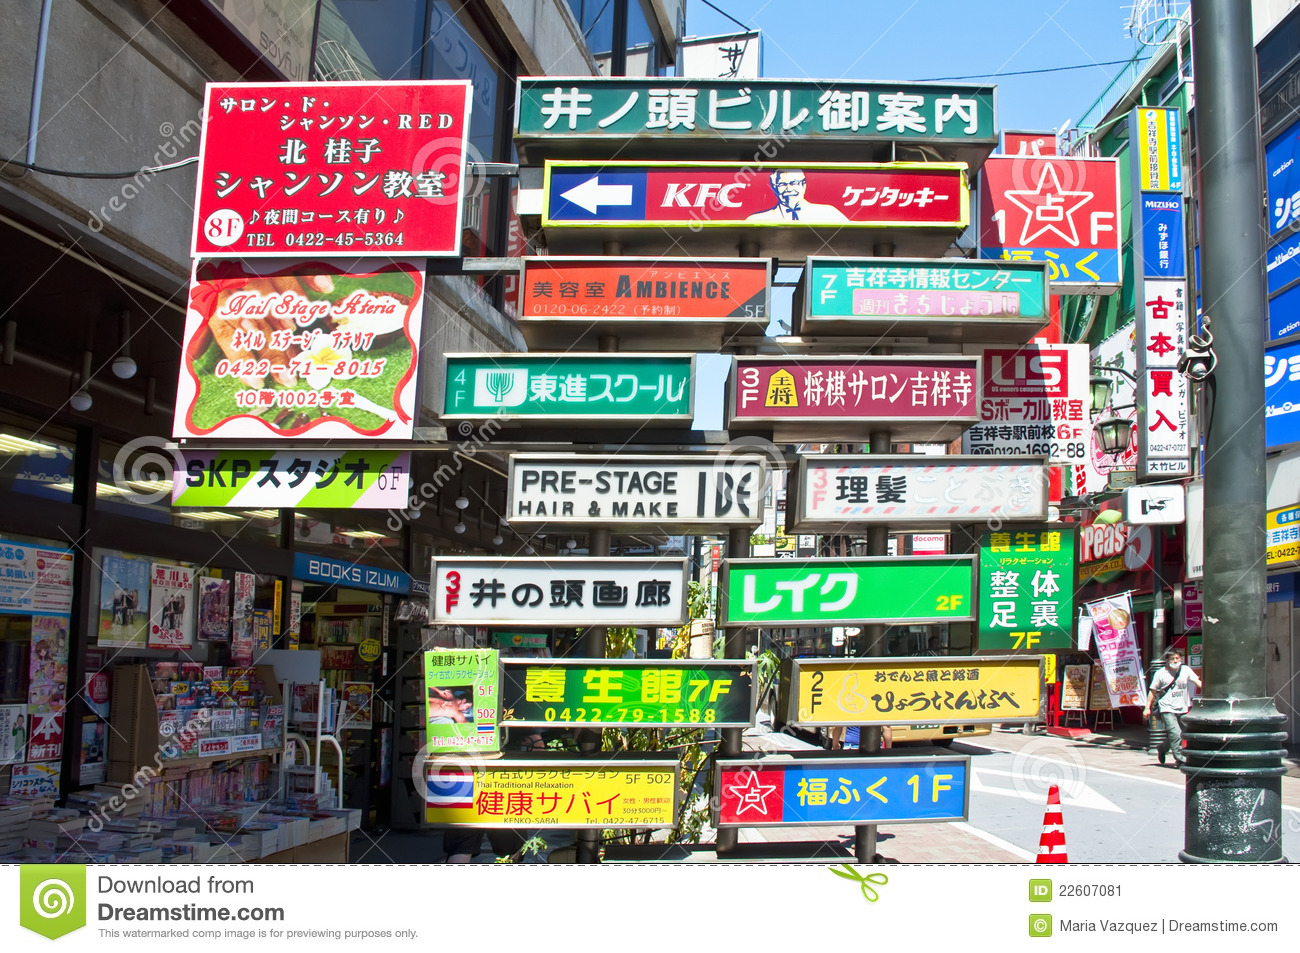 Advertising signs in Japan